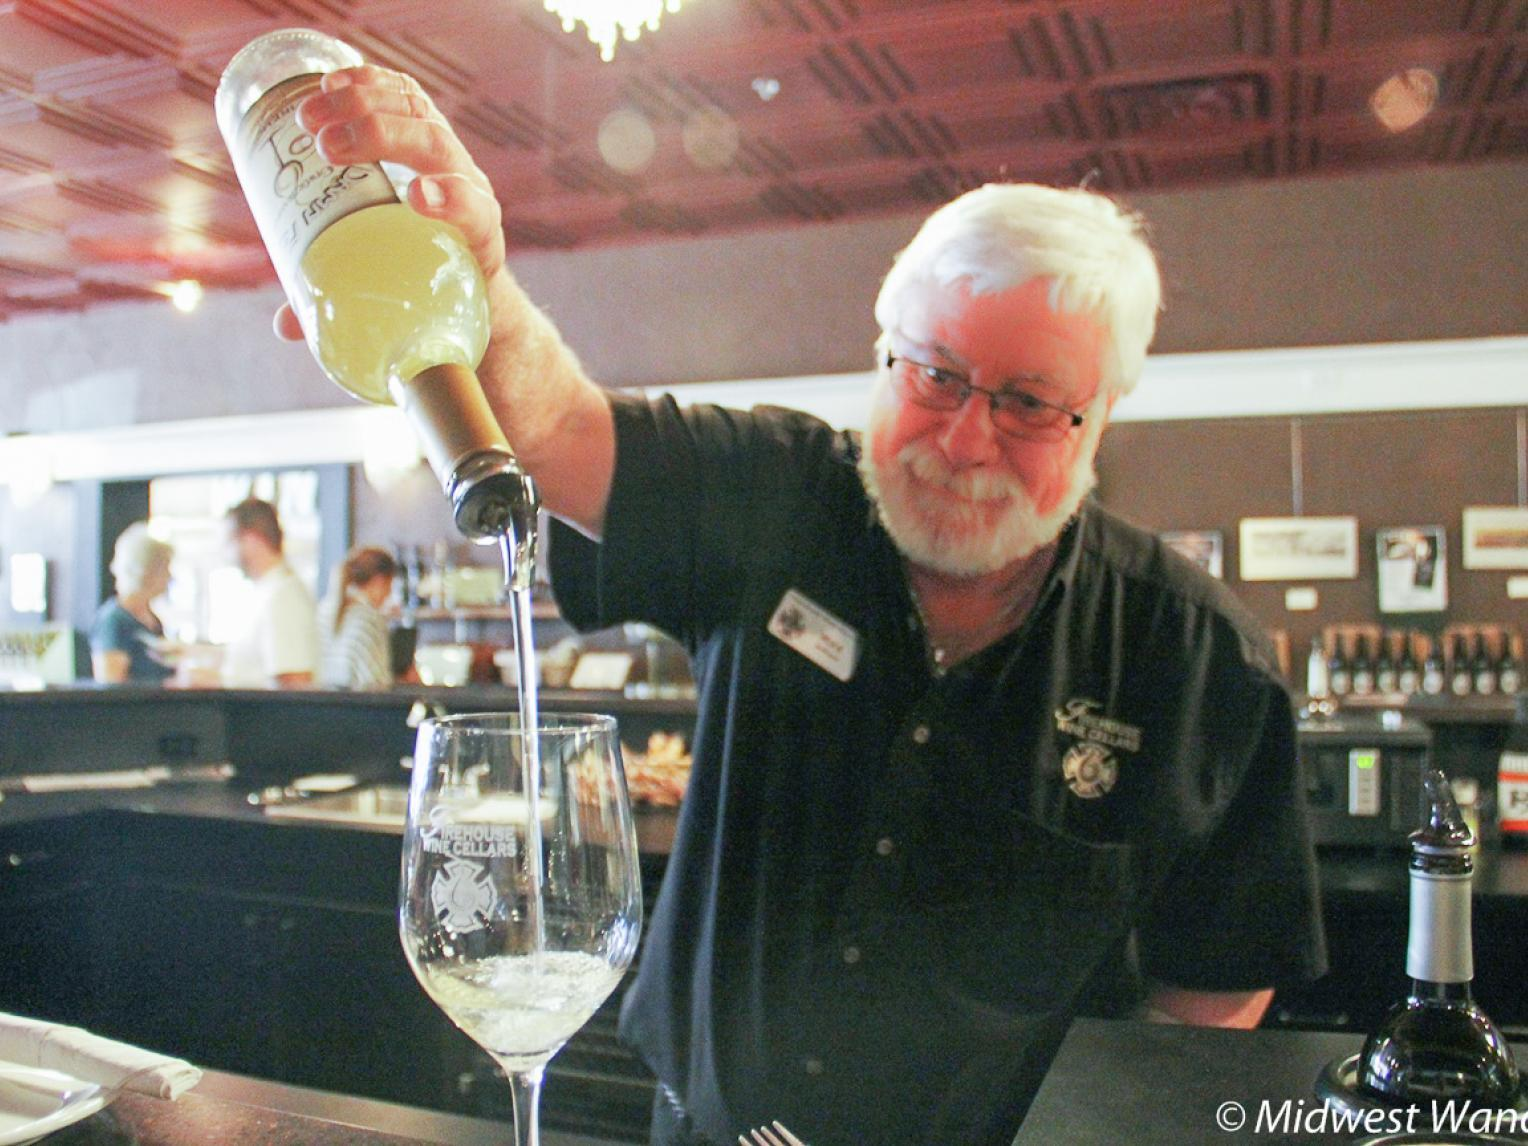 A staff member at Firehouse Wine Cellars pours a glass of wine.